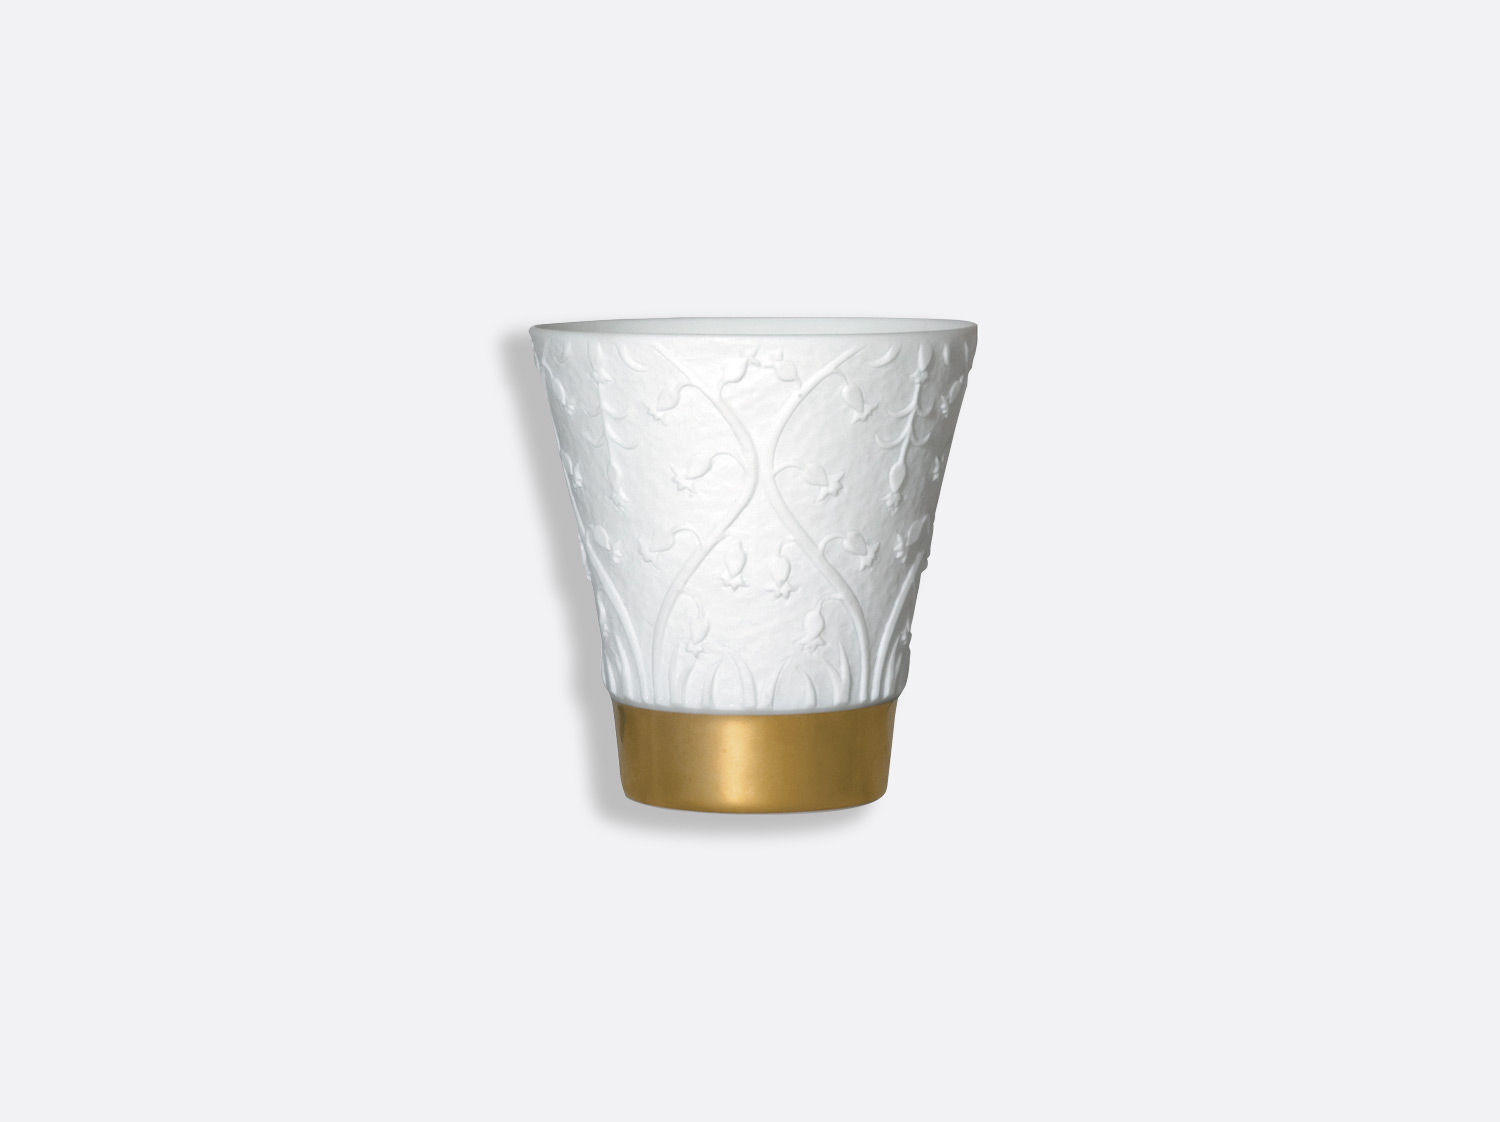 China Hyacinth - gold of the collection Votive tumblers | Bernardaud